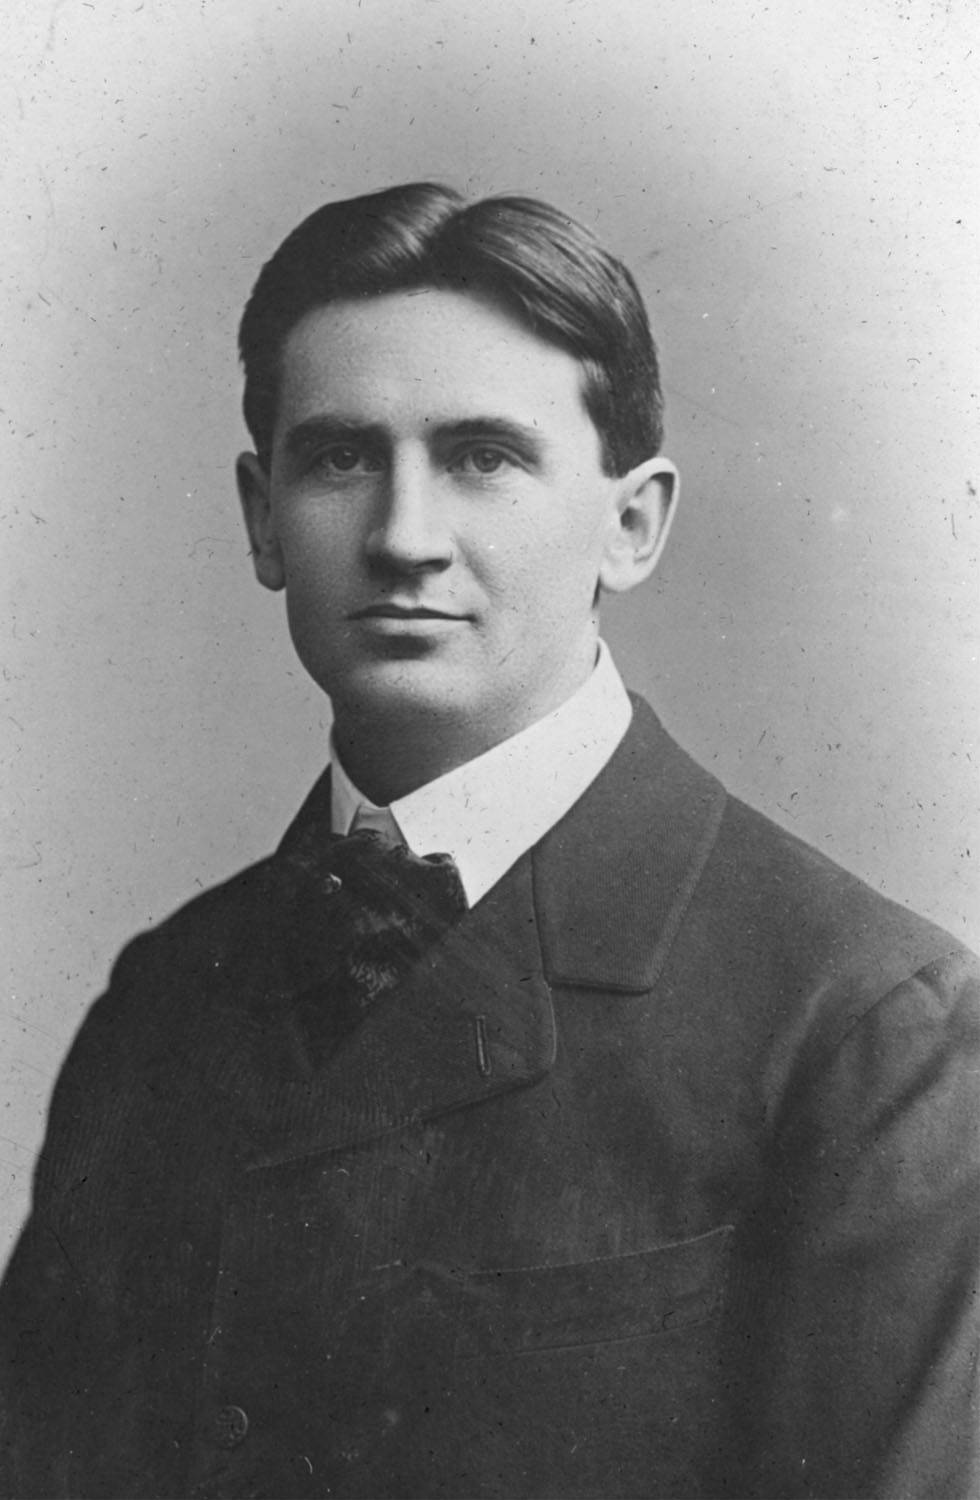 Melvin B. Rideout, Springfield College Digital Collections.